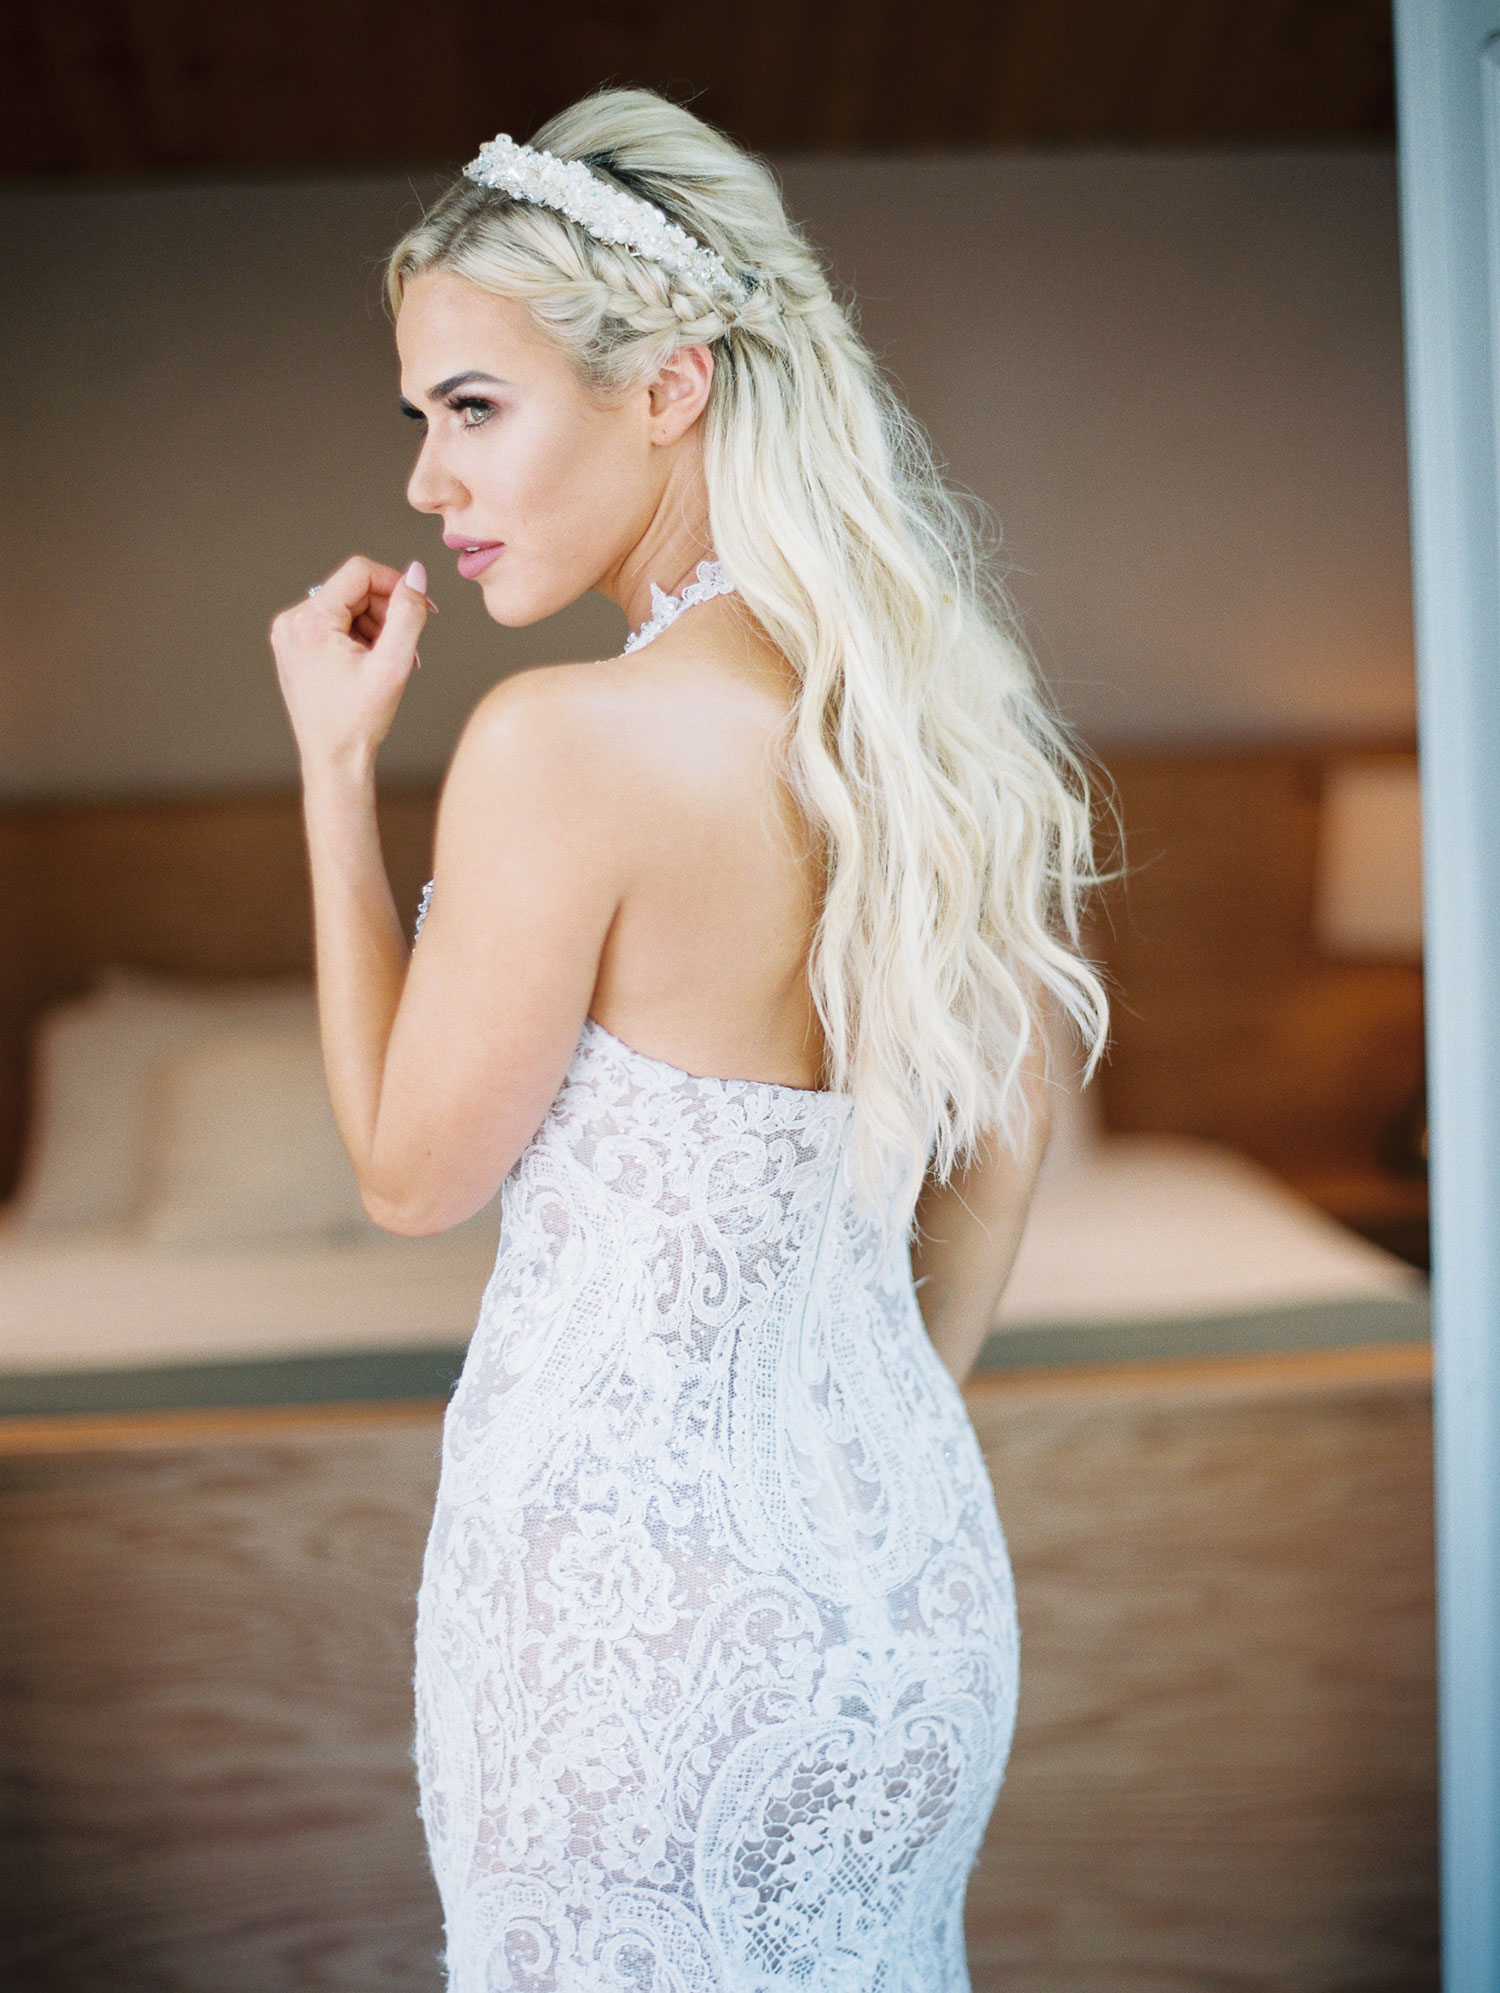 CJ Lana Perry WWE wedding hairstyle long beachy waves with fishtail braid and headpiece